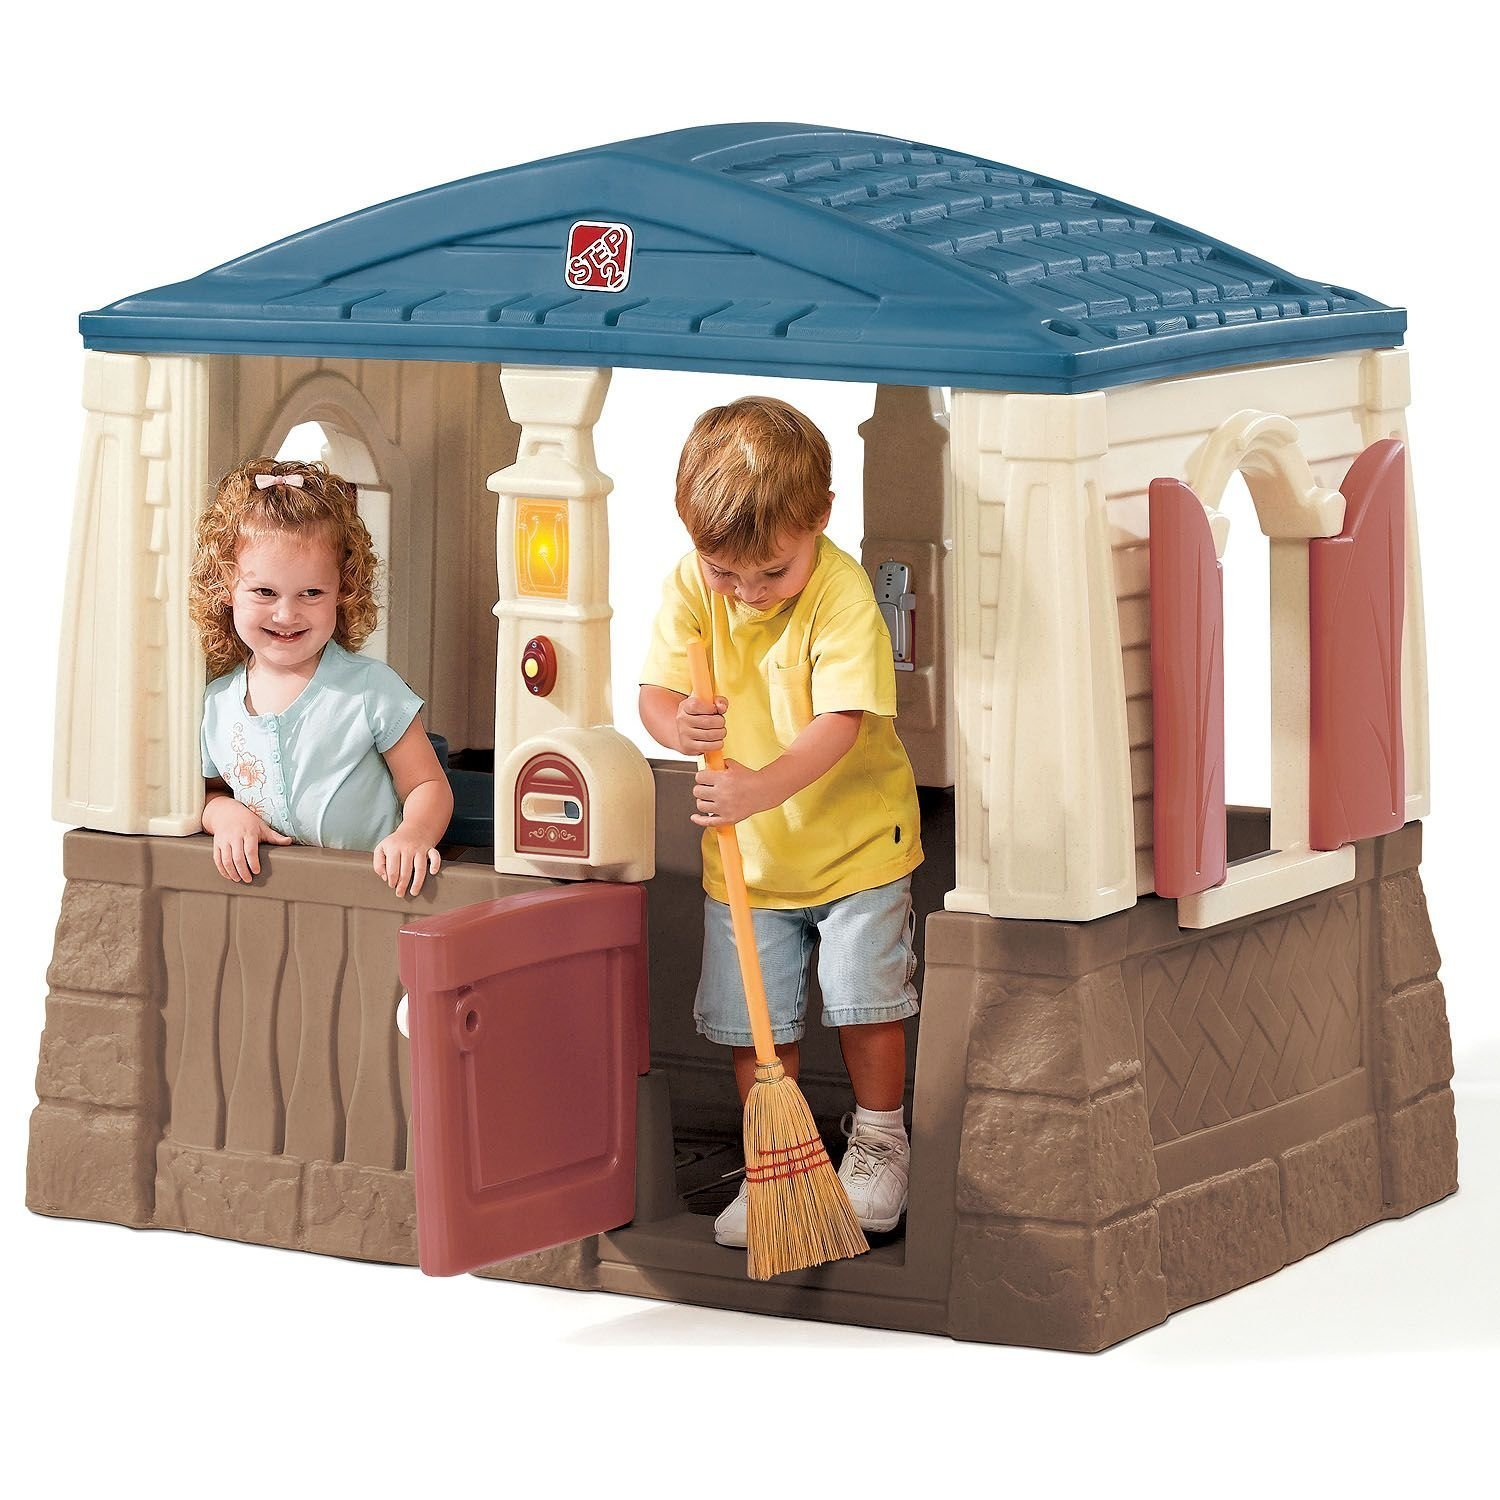 Outdoor Playhouses Toy : Kids outdoor playhouse pretend play fun